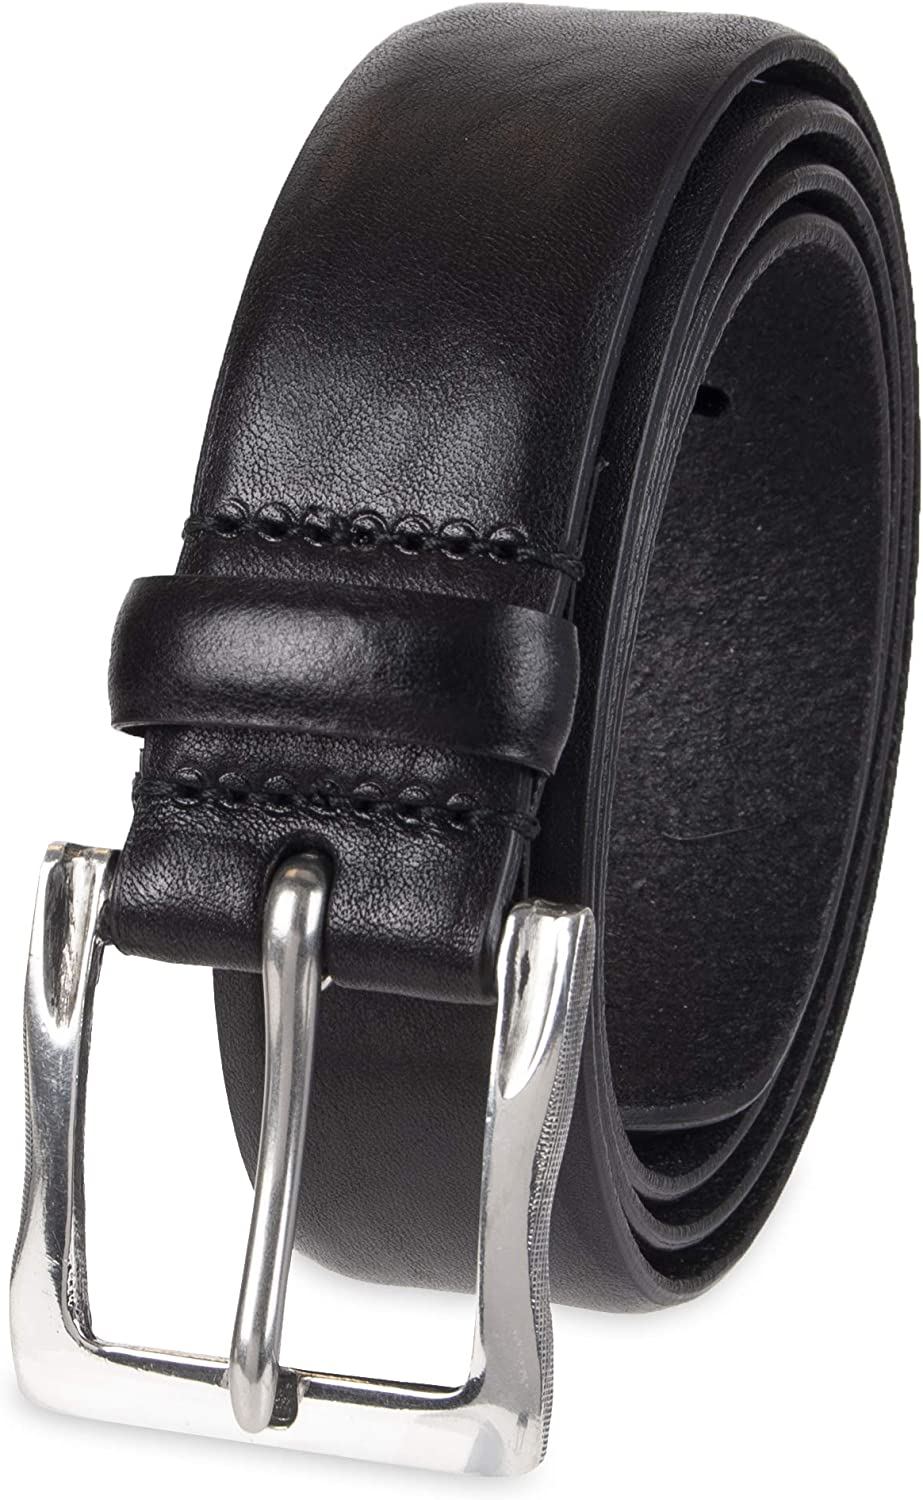 John Varvatos Mens 38mm Leather Belt with Harness Buckle 42 Chocolate